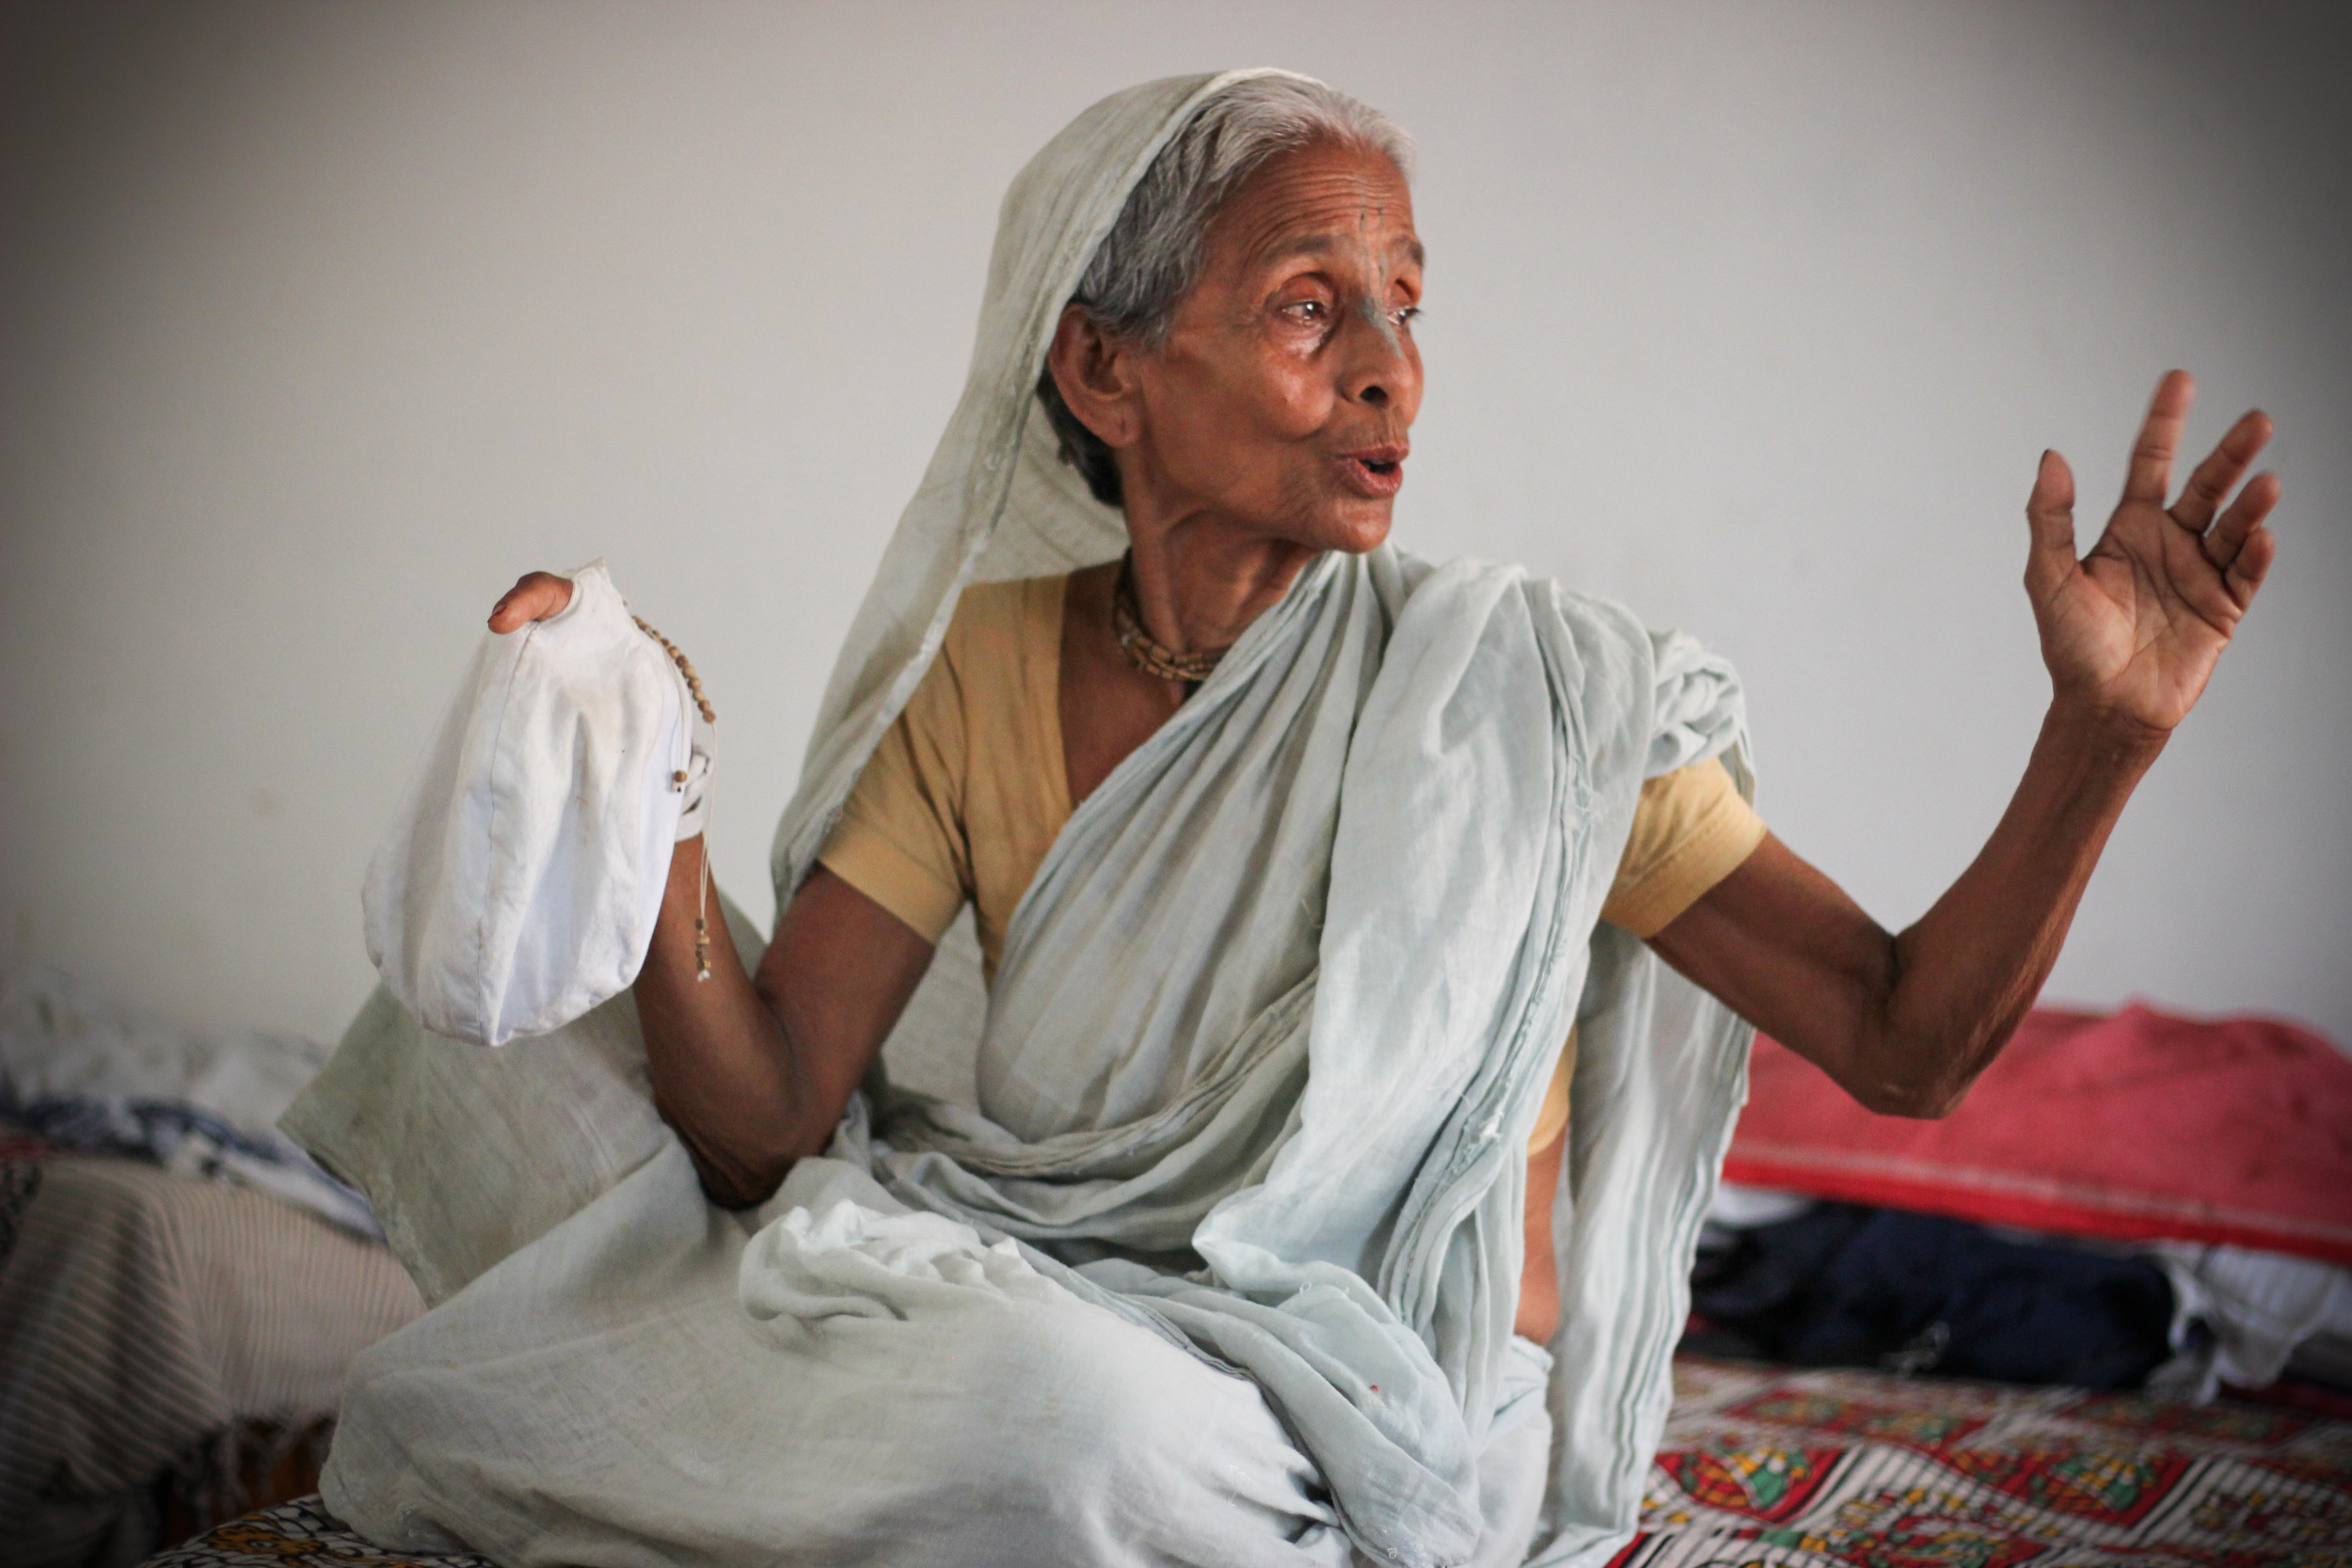 A widow in the holy city of Vrindavan shares her story. She, like so many others, was abandoned by her children, her property and security stolen after her husband died. She is uneducated and alone, resigned to a life of monotonous piety and suffering.